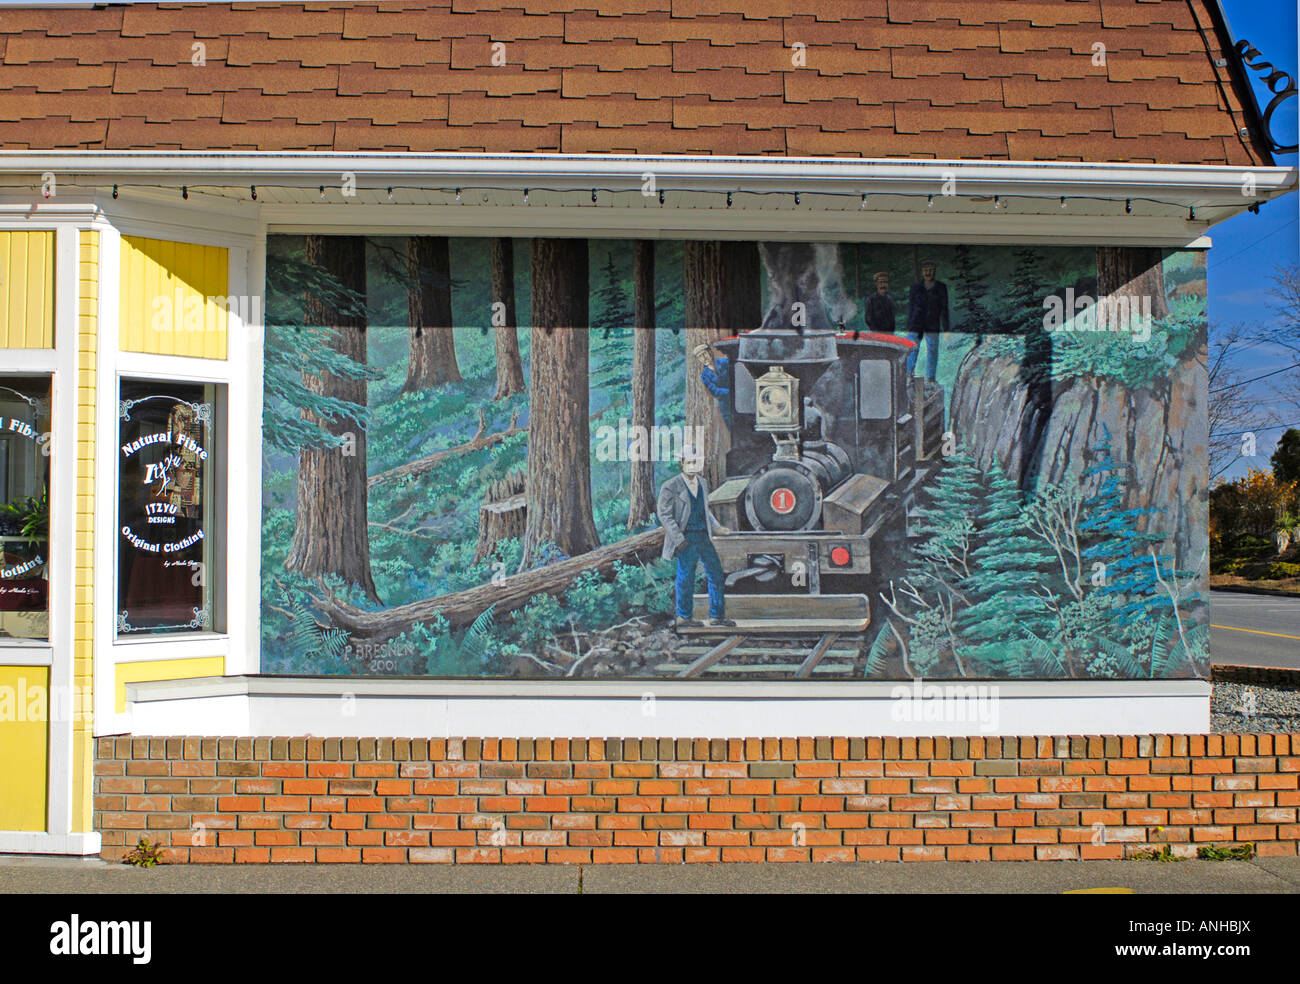 Chemainus Town Outdoor Wall Murals Vancouver Island BC British Stock